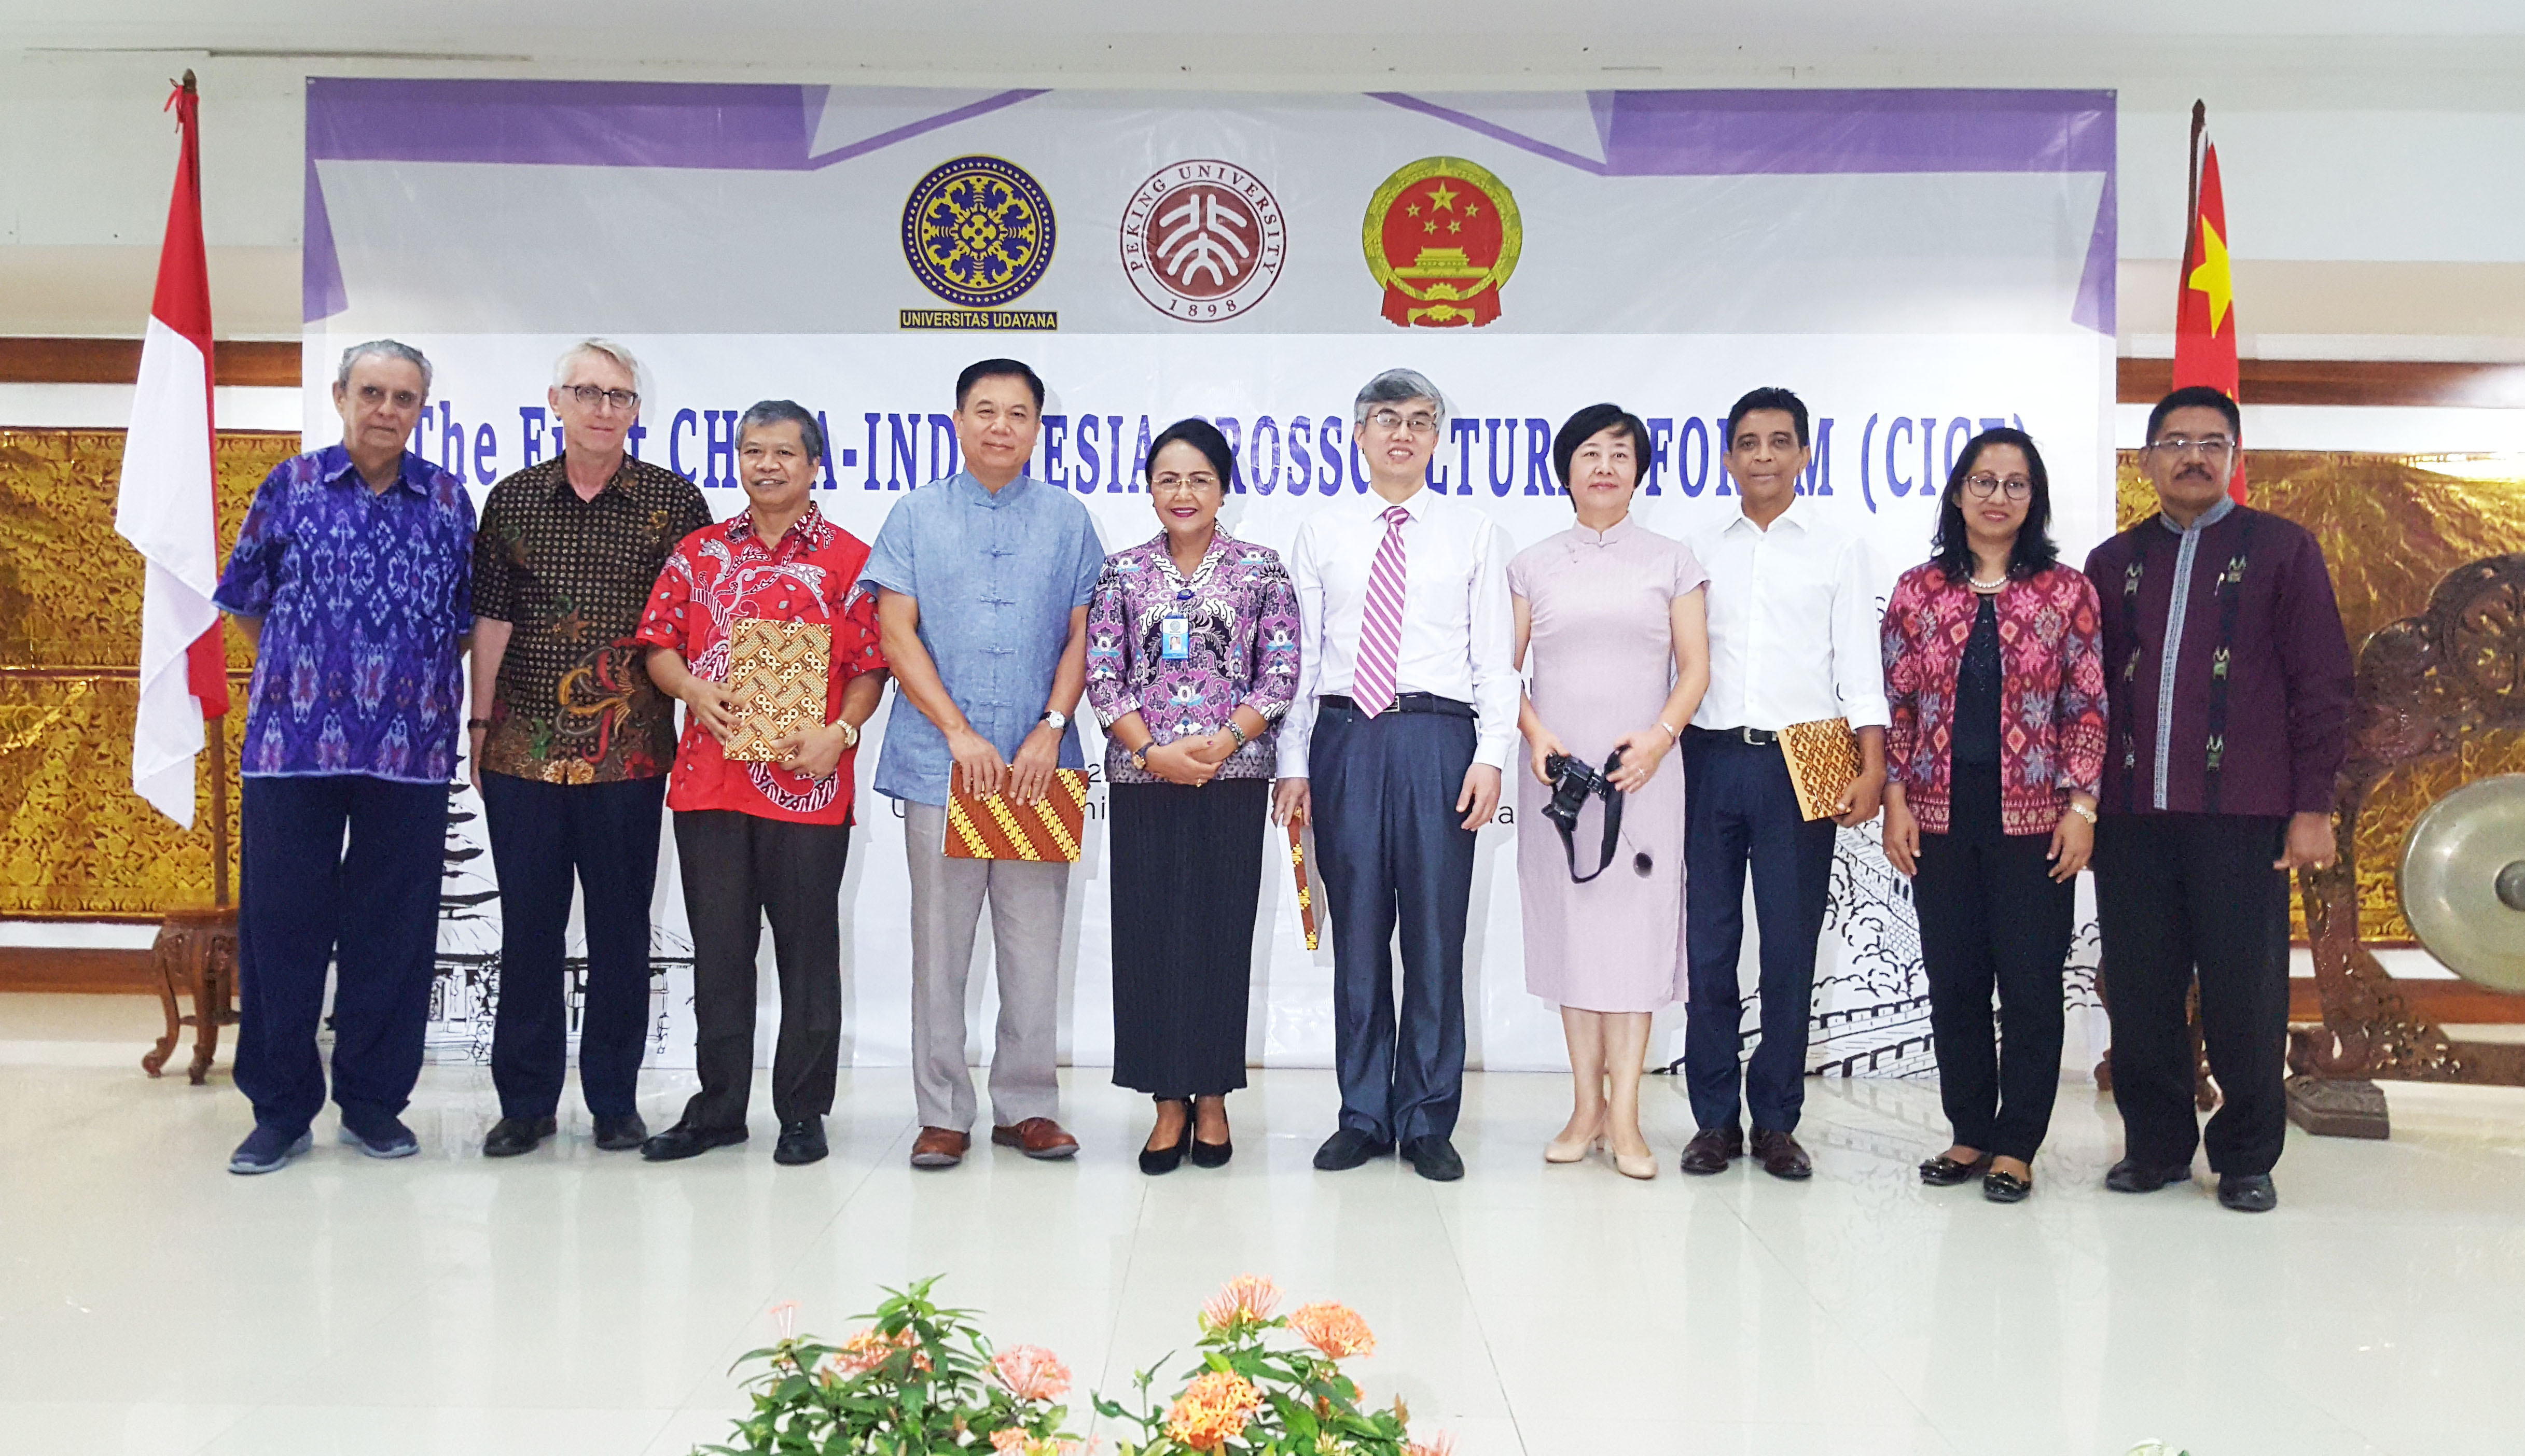 The First CHINA-INDONESIA CROSS-CULTURAL FORUM (CICF)